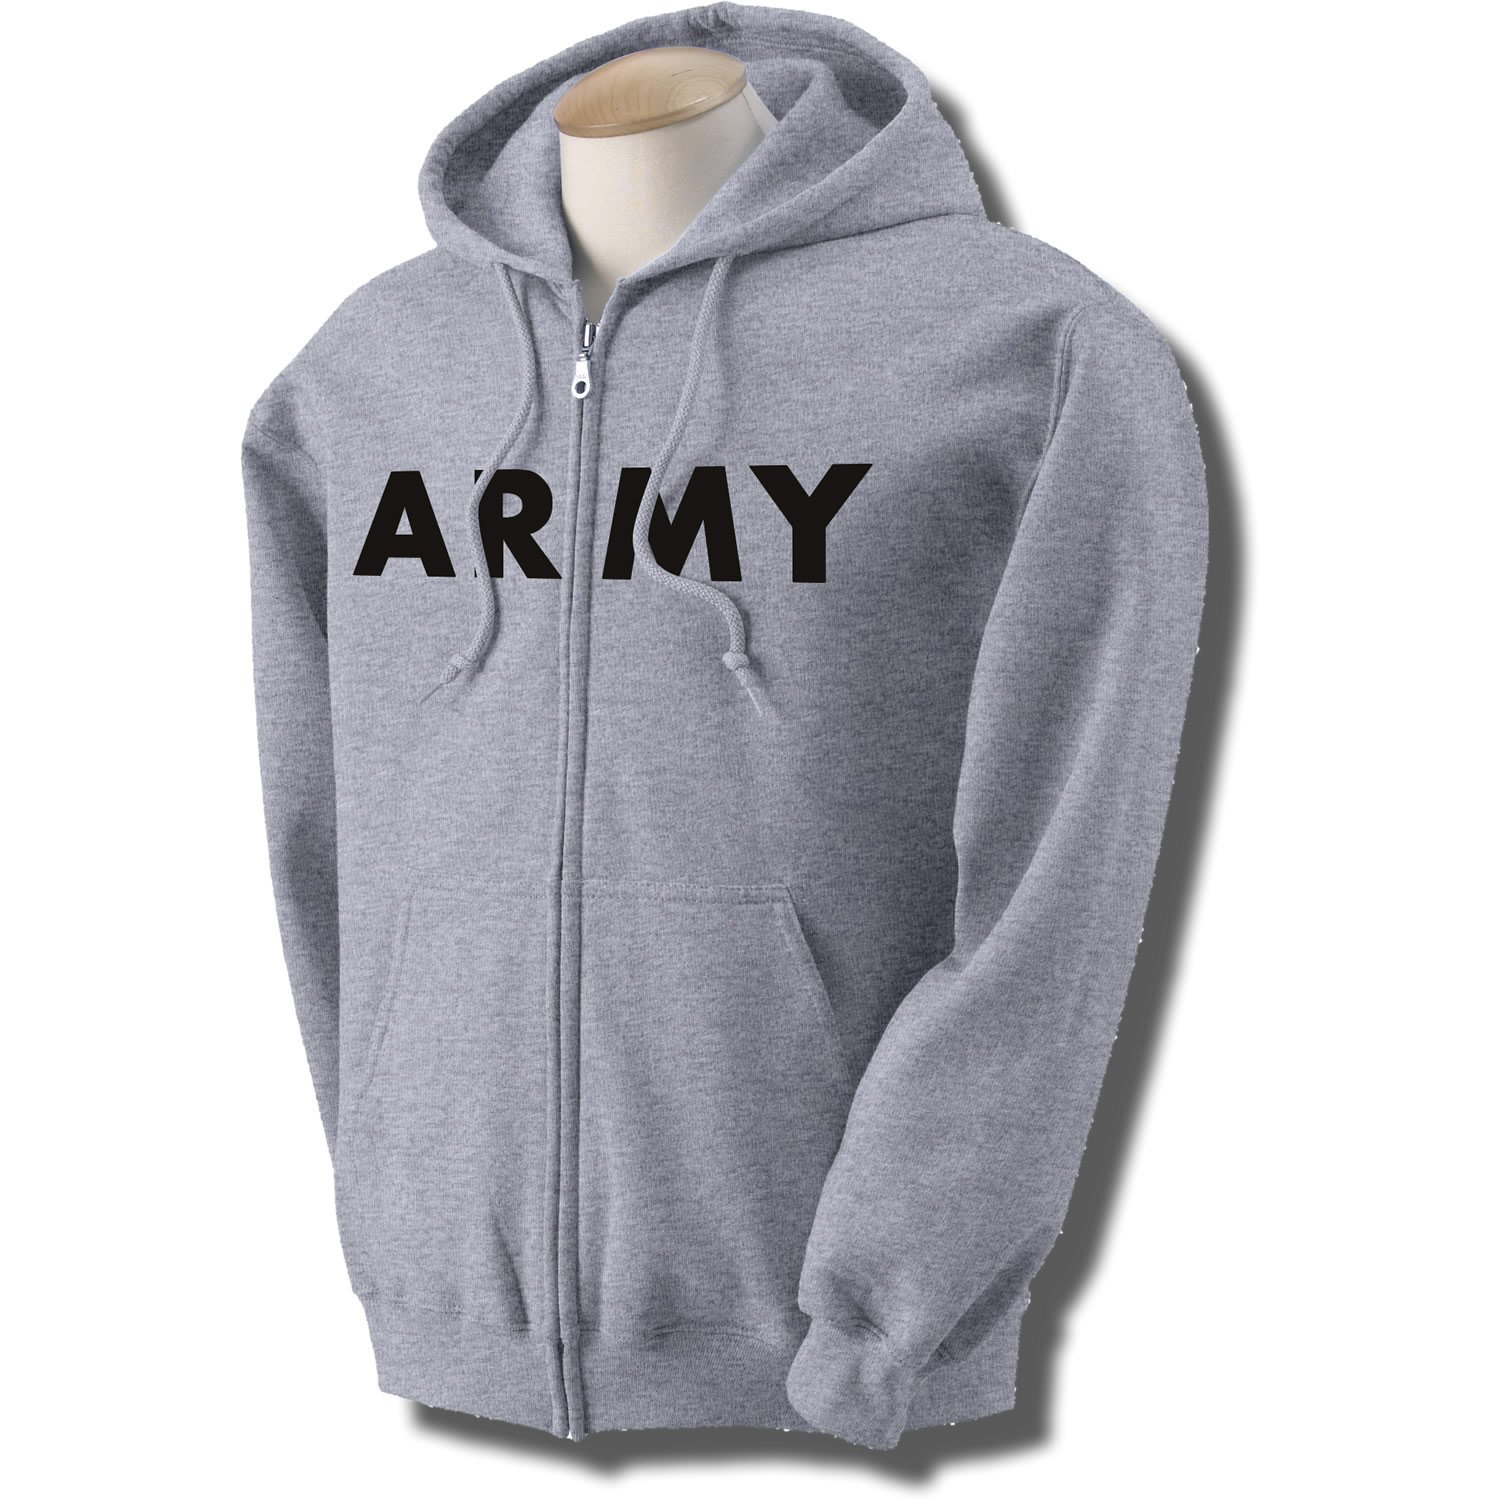 ARMY Full-Zip Hooded Sweatshirt in Gray at Amazon Men's Clothing ...